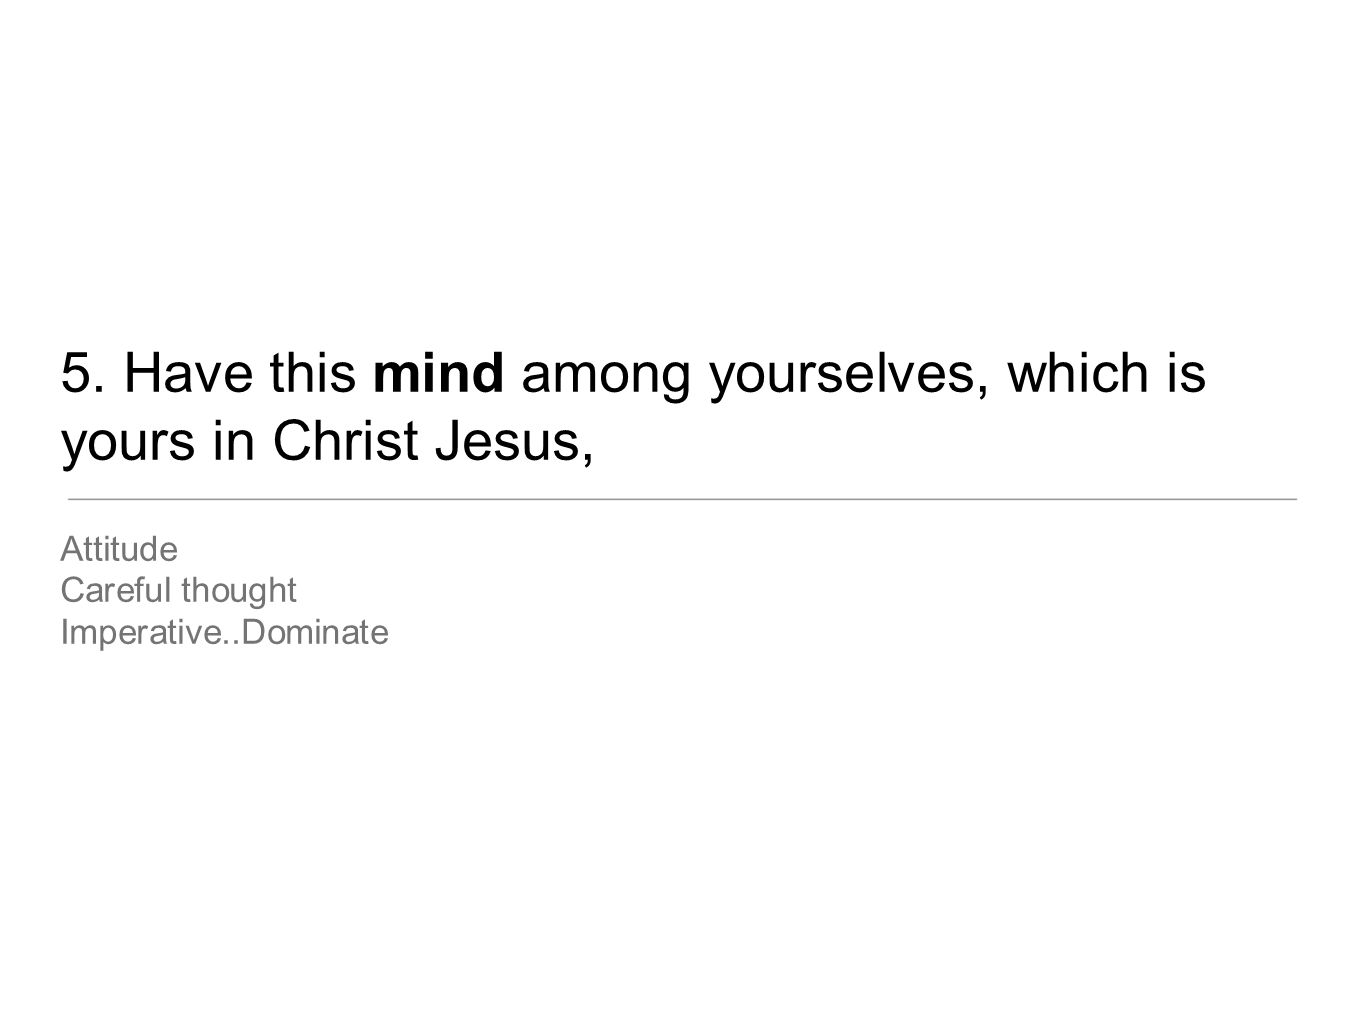 5. Have this mind among yourselves, which is yours in Christ Jesus,